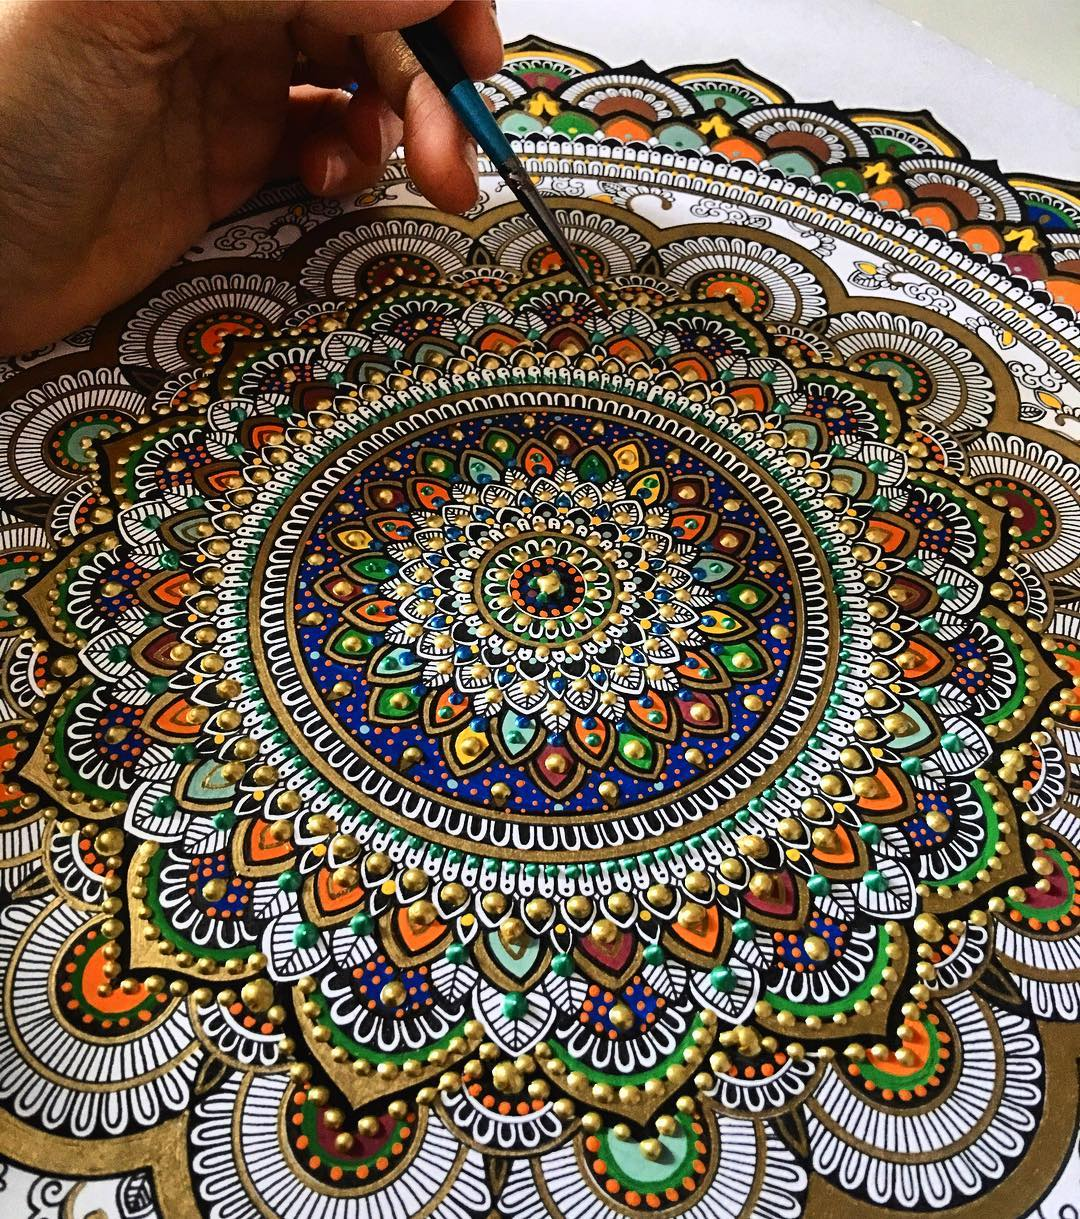 New Painted Mandalas Gilded With Gold Leaf By Artist